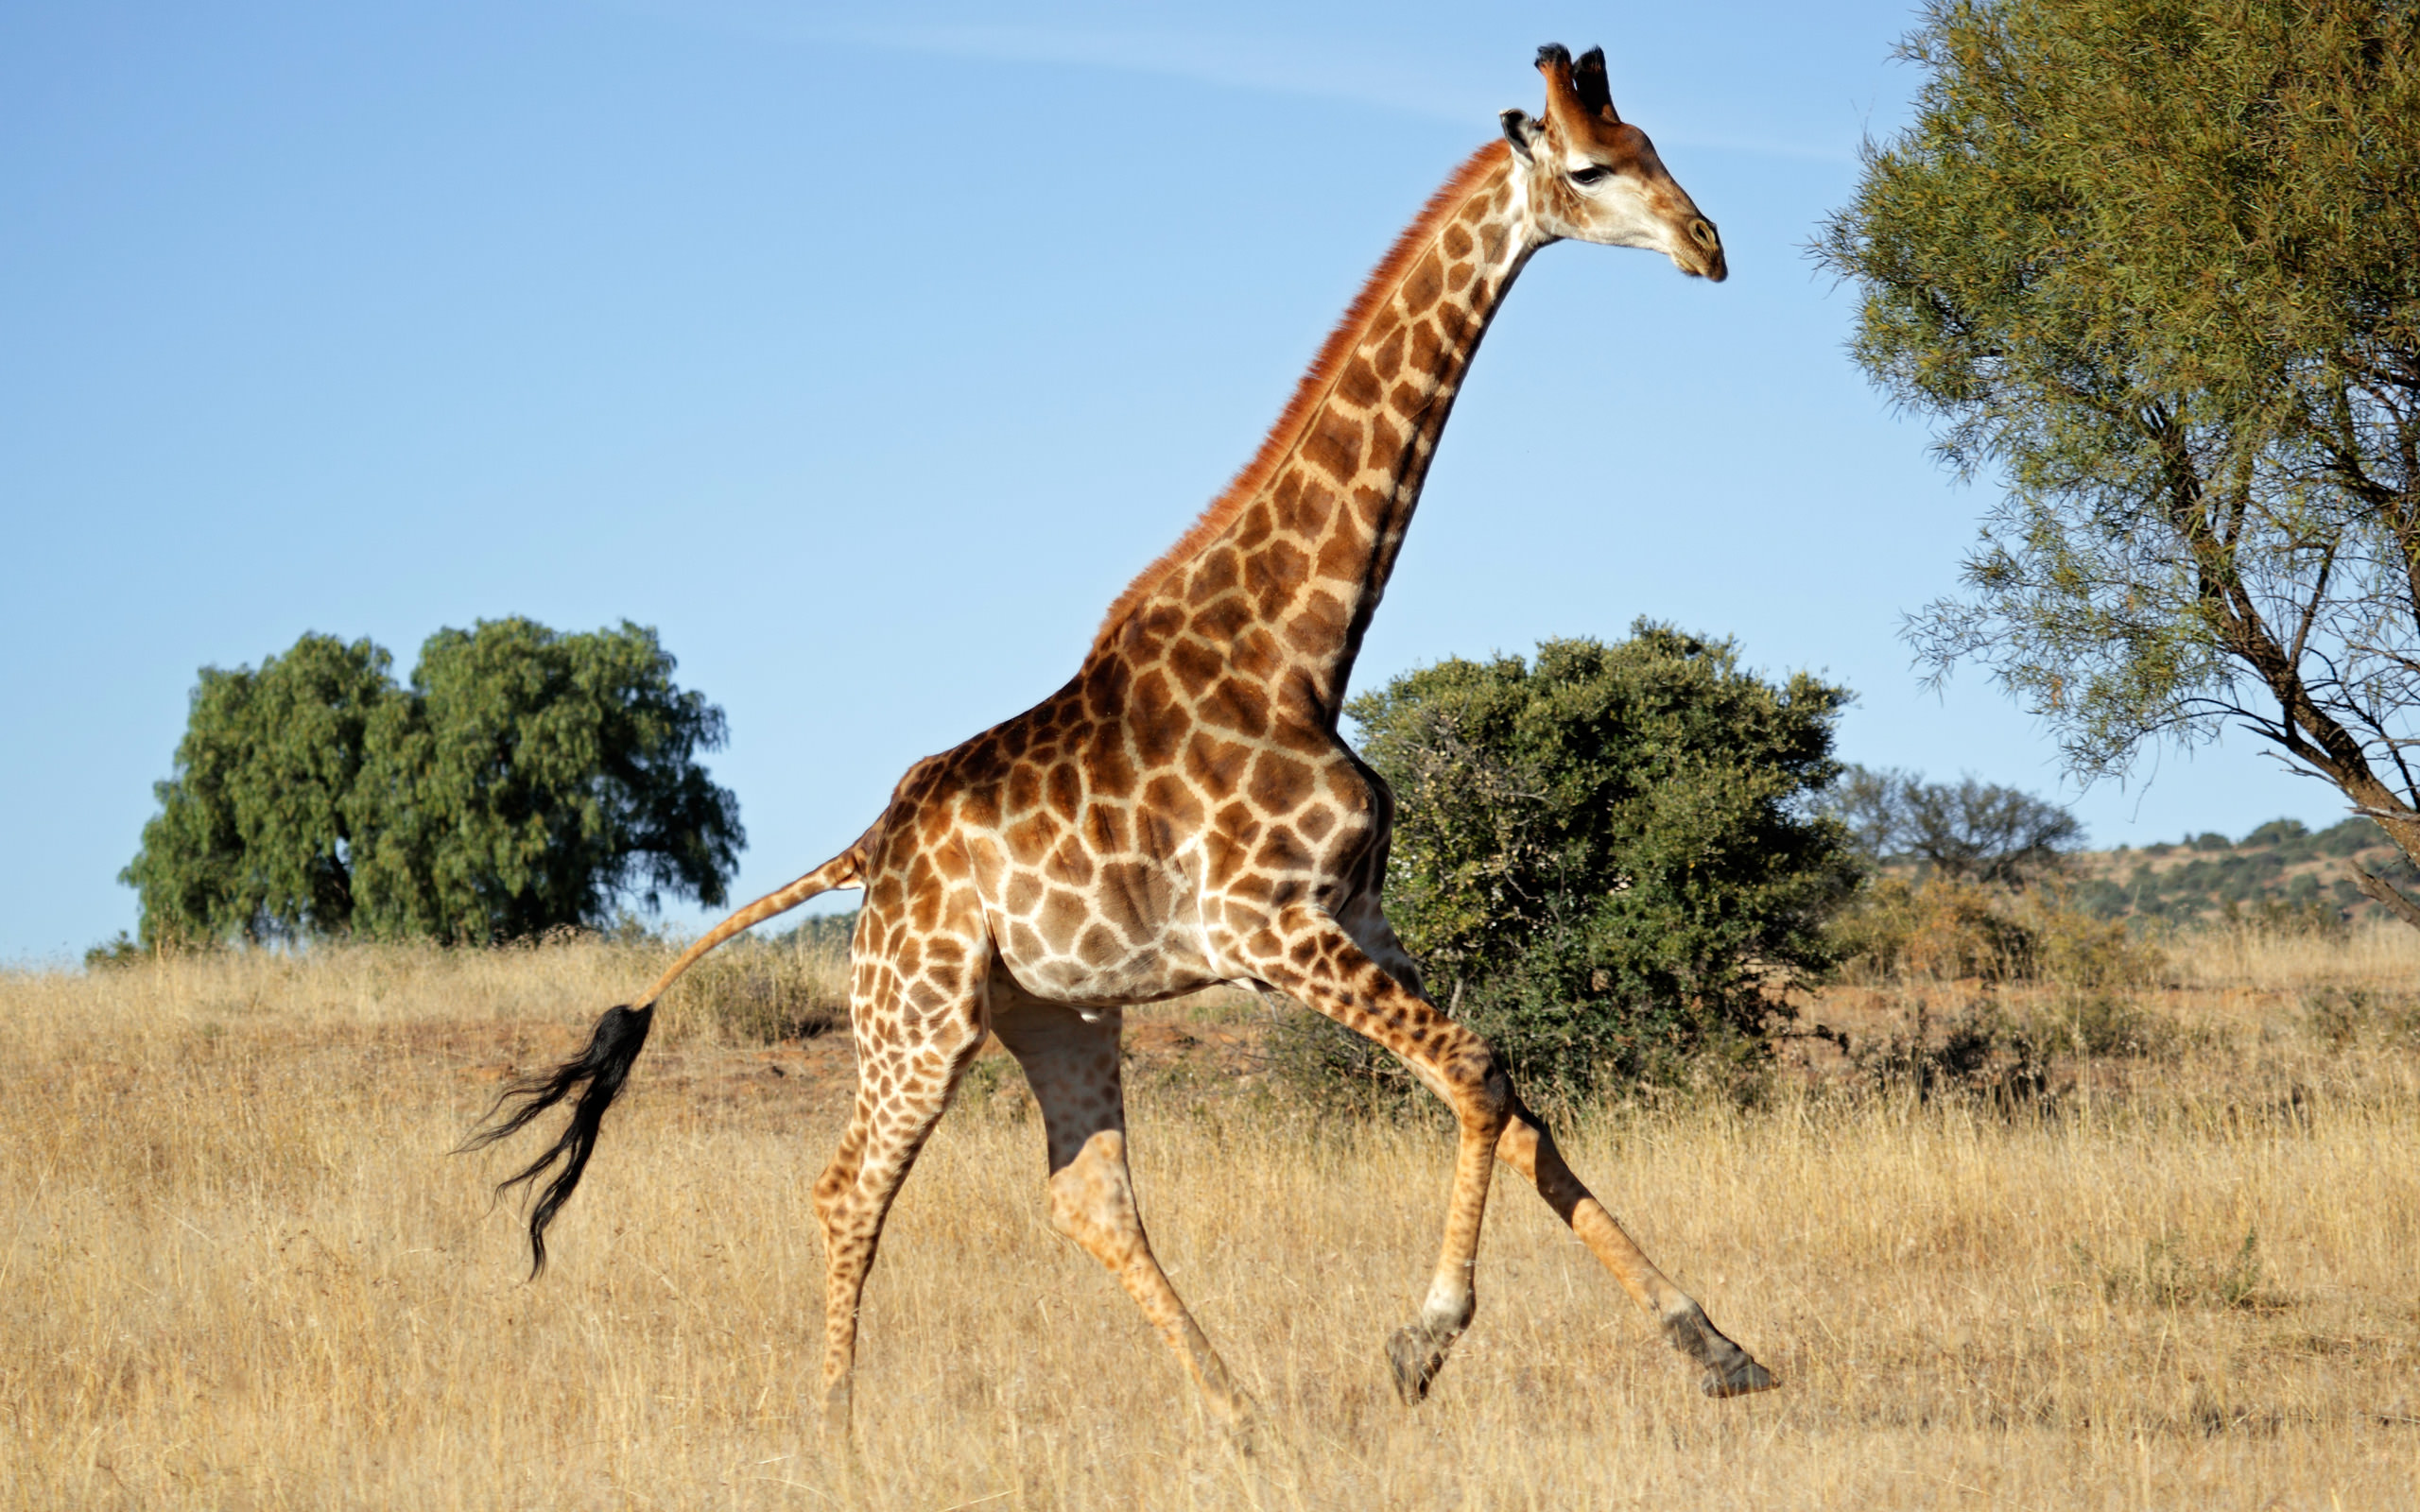 Running Giraffe Wallpaper